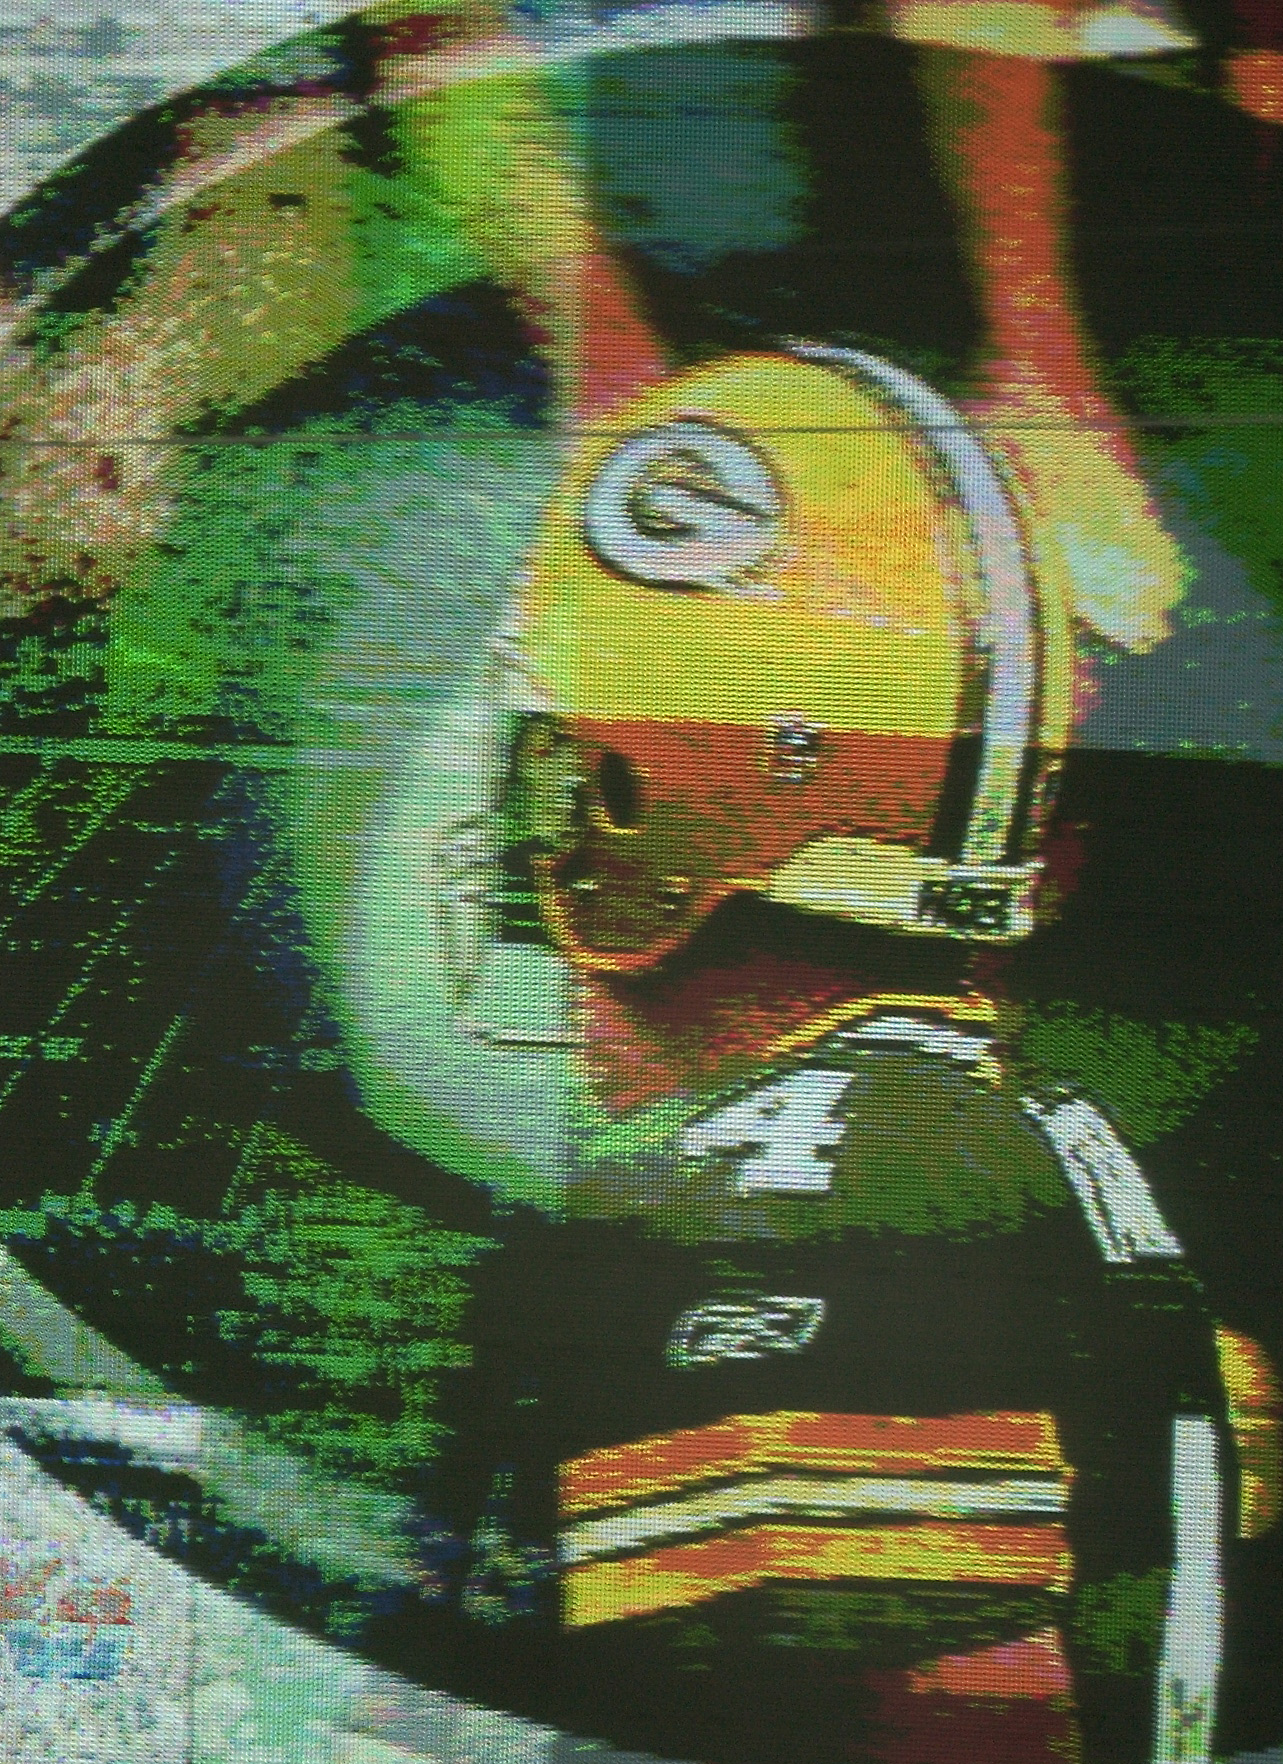 Brett Favre, whose birthday is today, was photographed on the stadium screen with the team's logo fading in behind his image. Raymond T. Rivard photograph